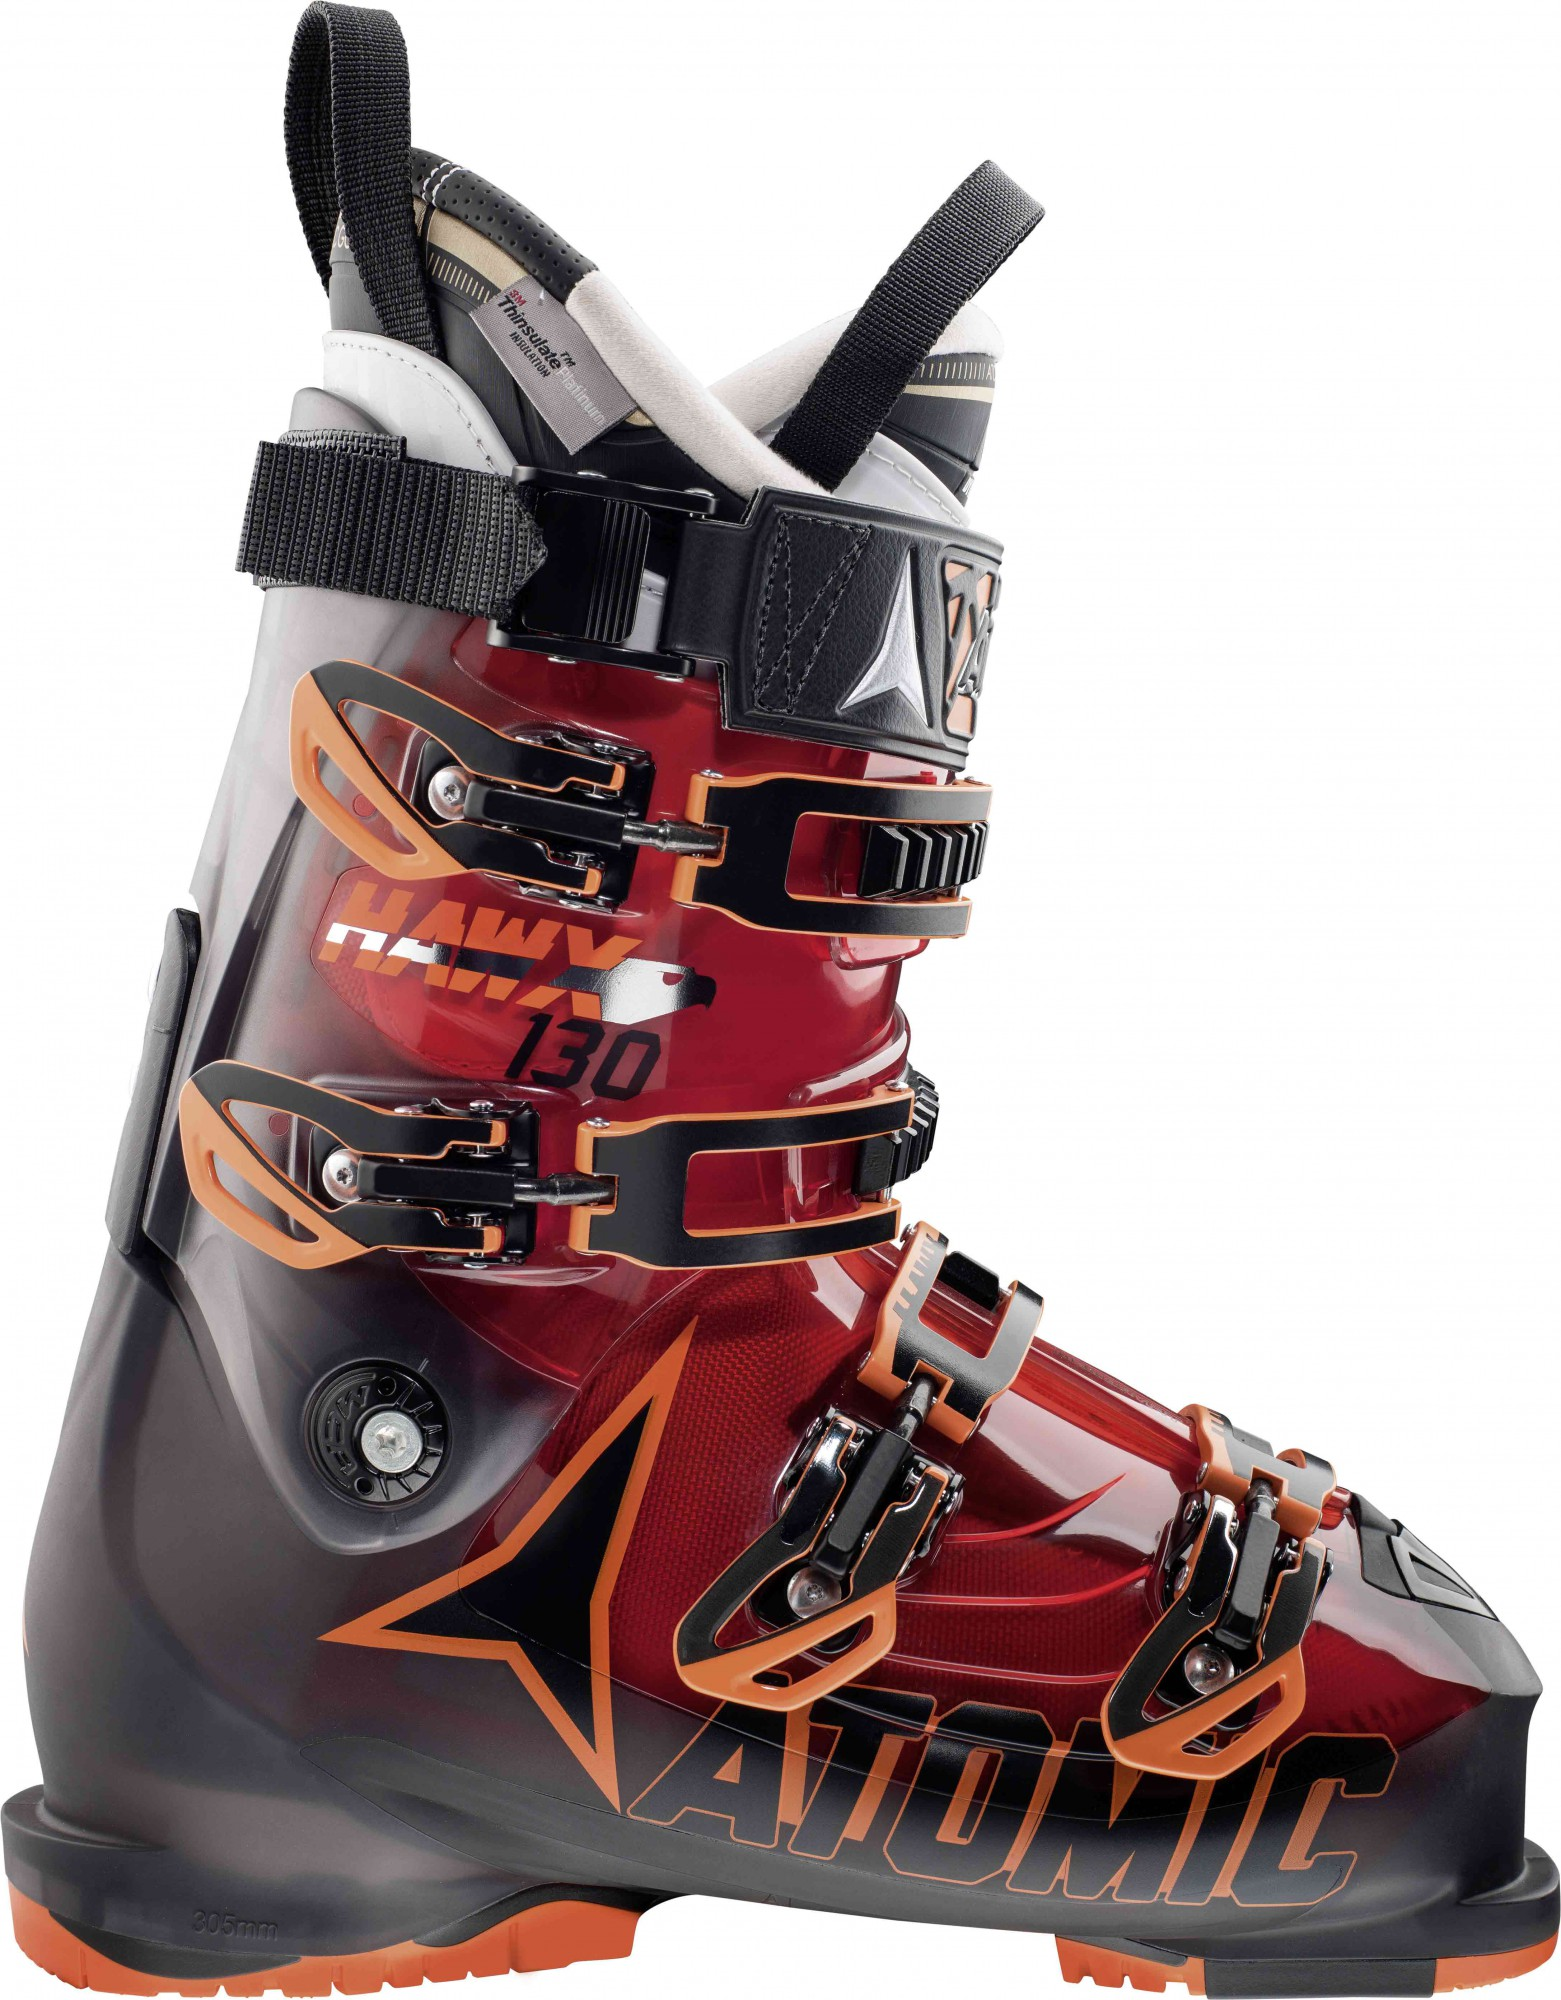 Atomic Hawx 130 - 1 Paar All Mountain Skischuhe - MP 31.5